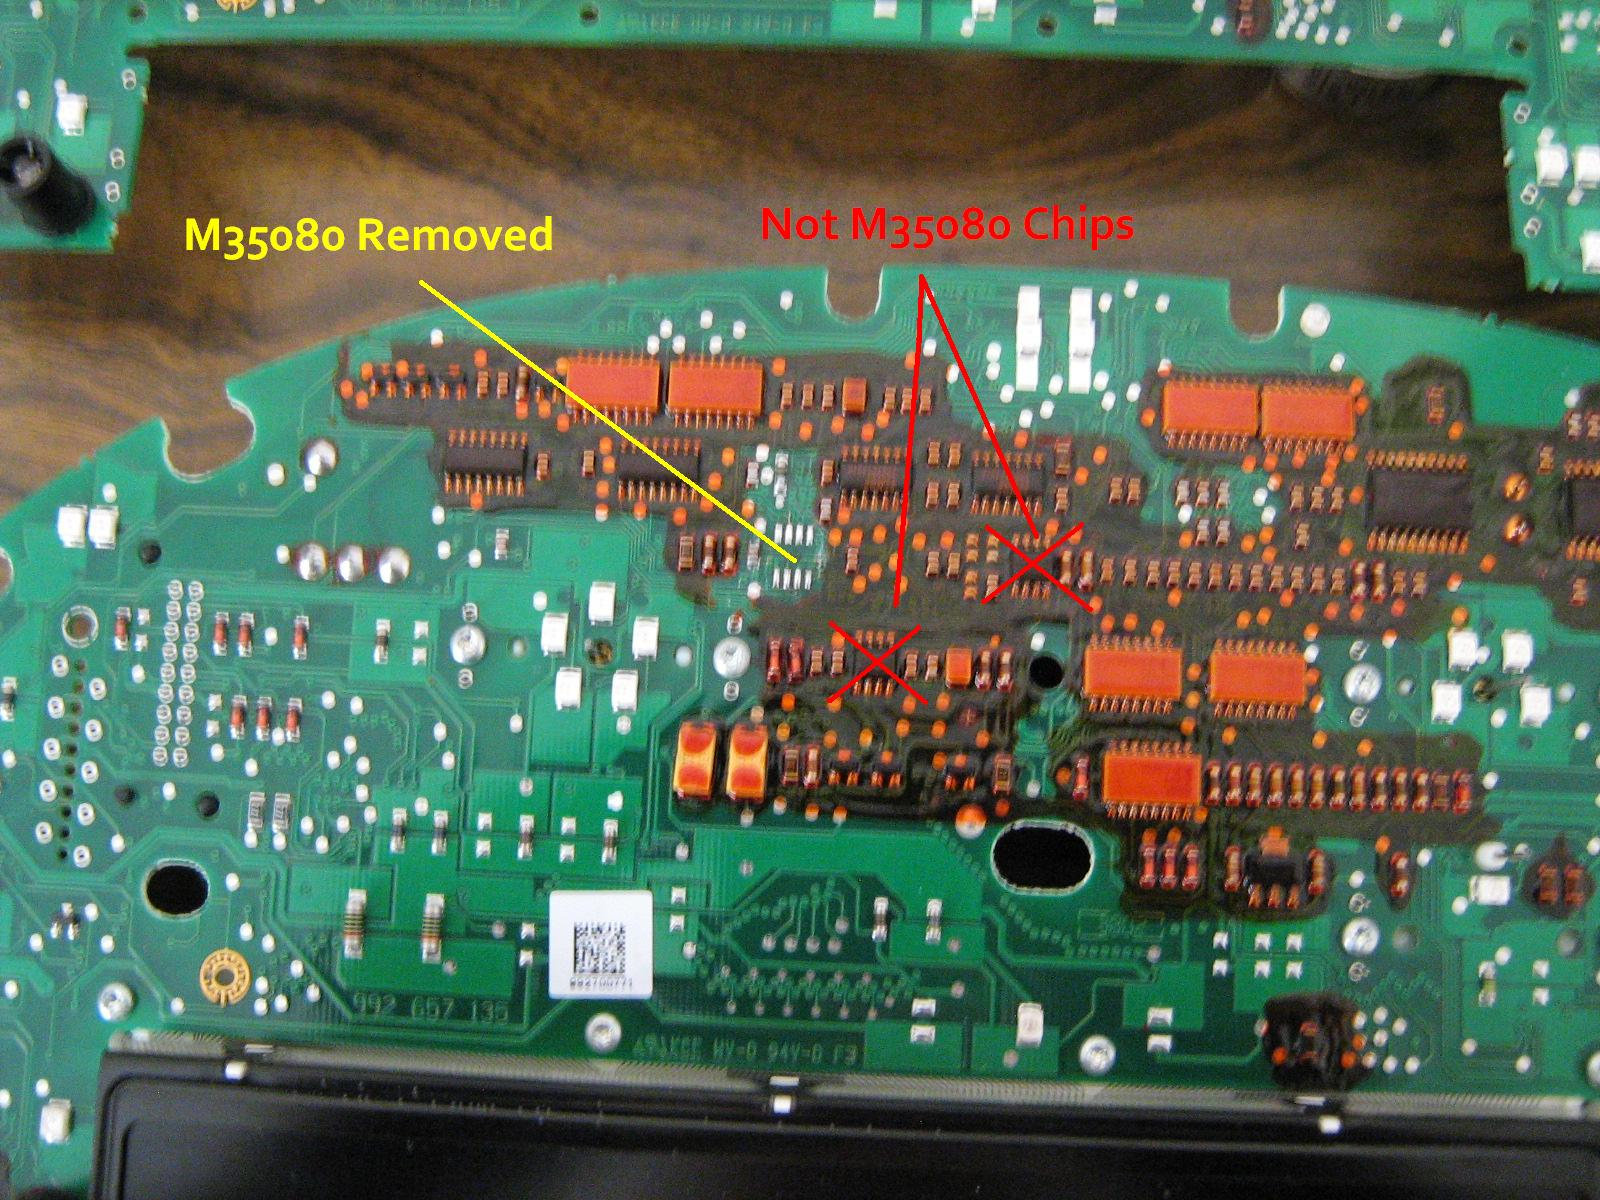 vvdi-prog-bmw-m35080-chip-location